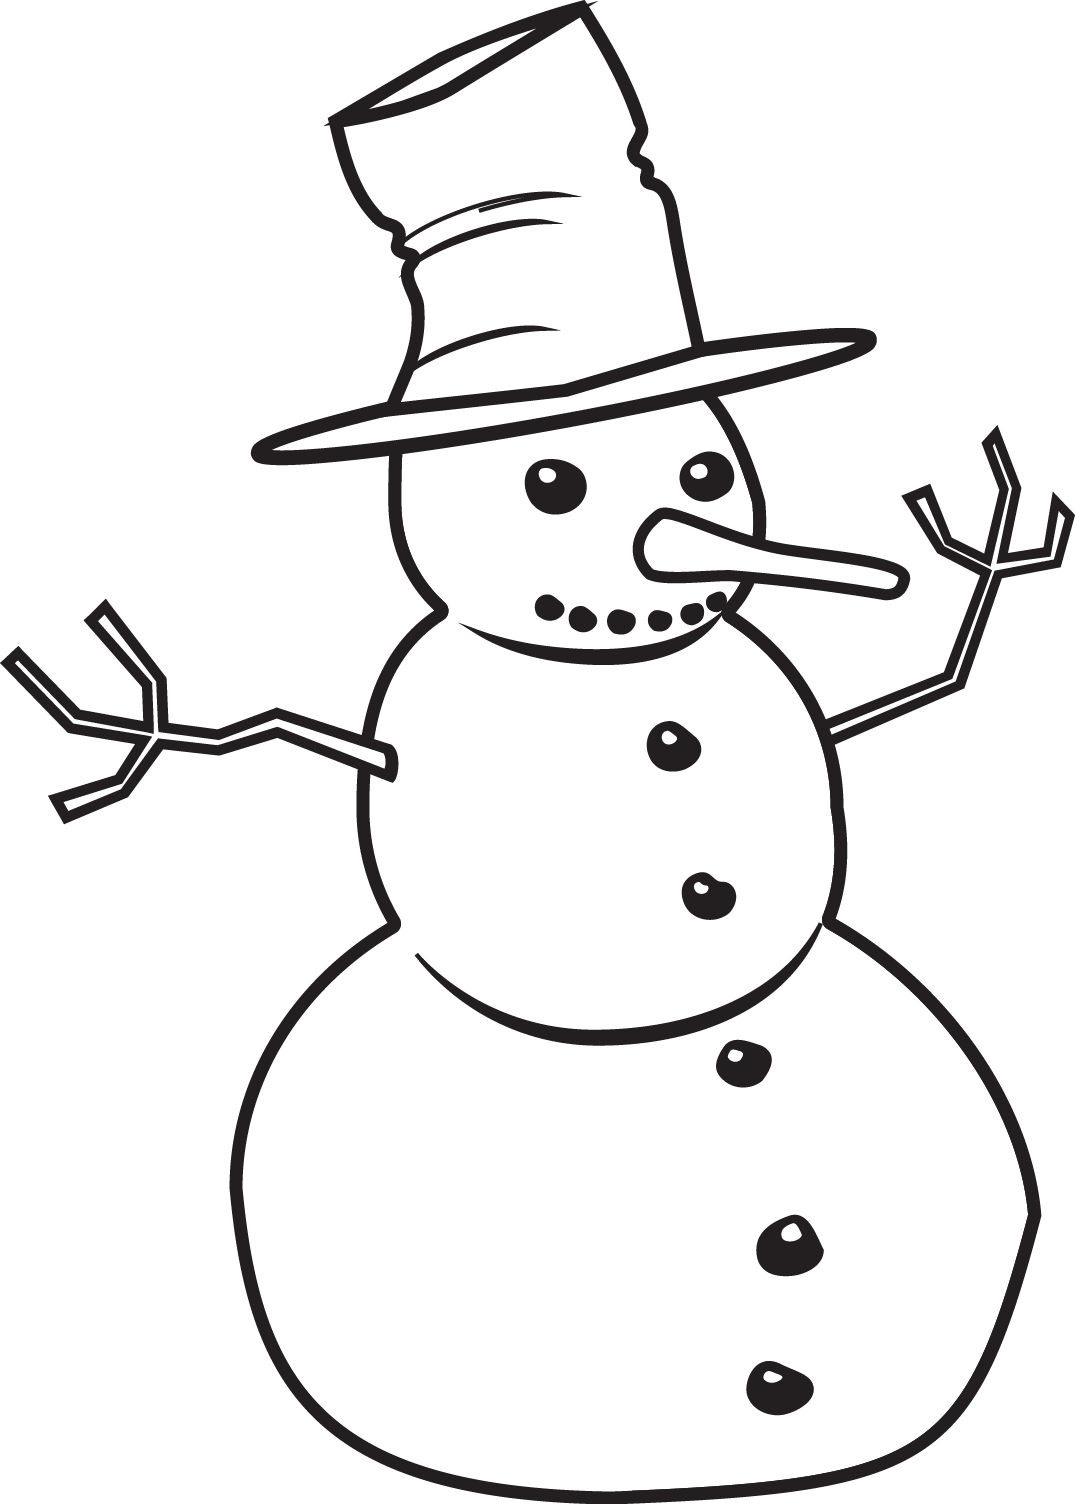 Stay Busy This Winter With Cute Snowman Crafts For Kids